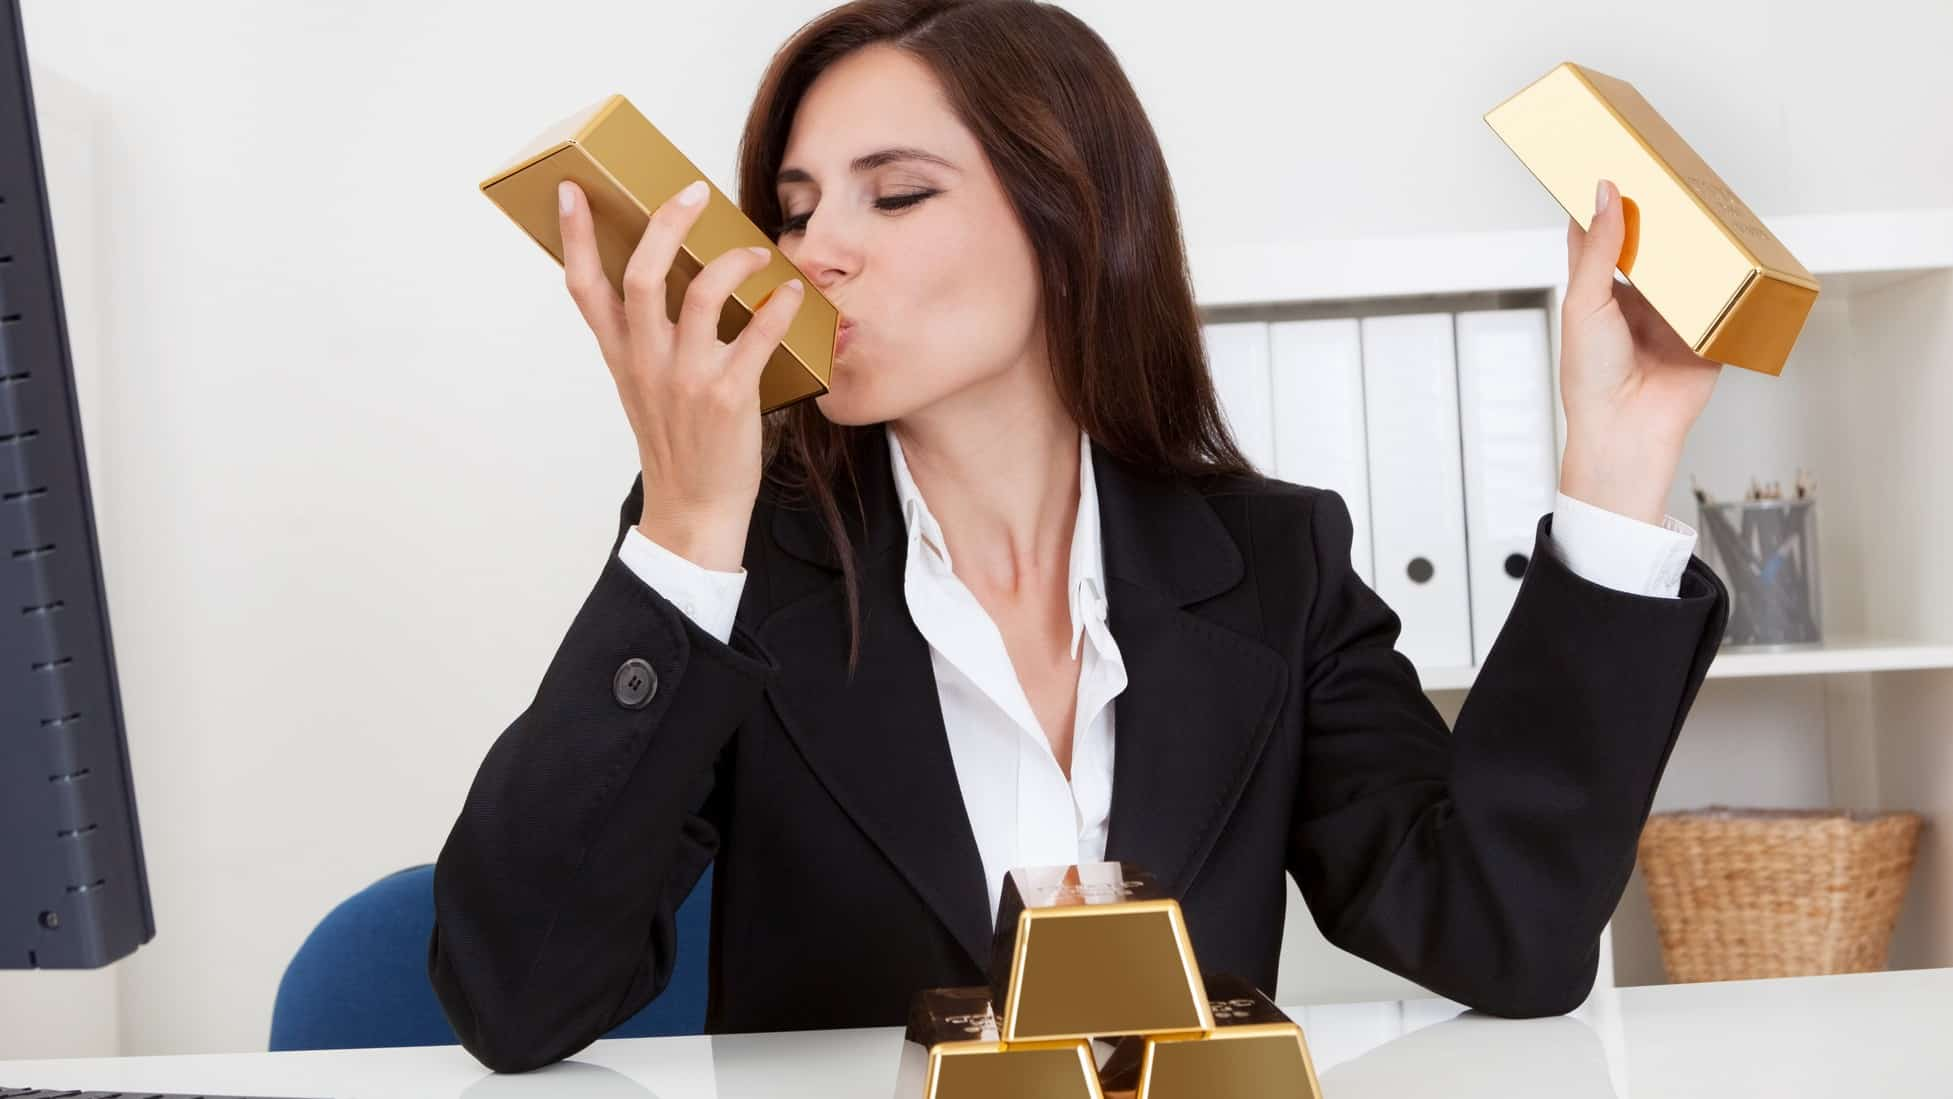 a woman in a business suit sits at her desk with gold bars in each hand while she kisses one with her eyes closed. Her desk has another three gold bars stacked in front of her.